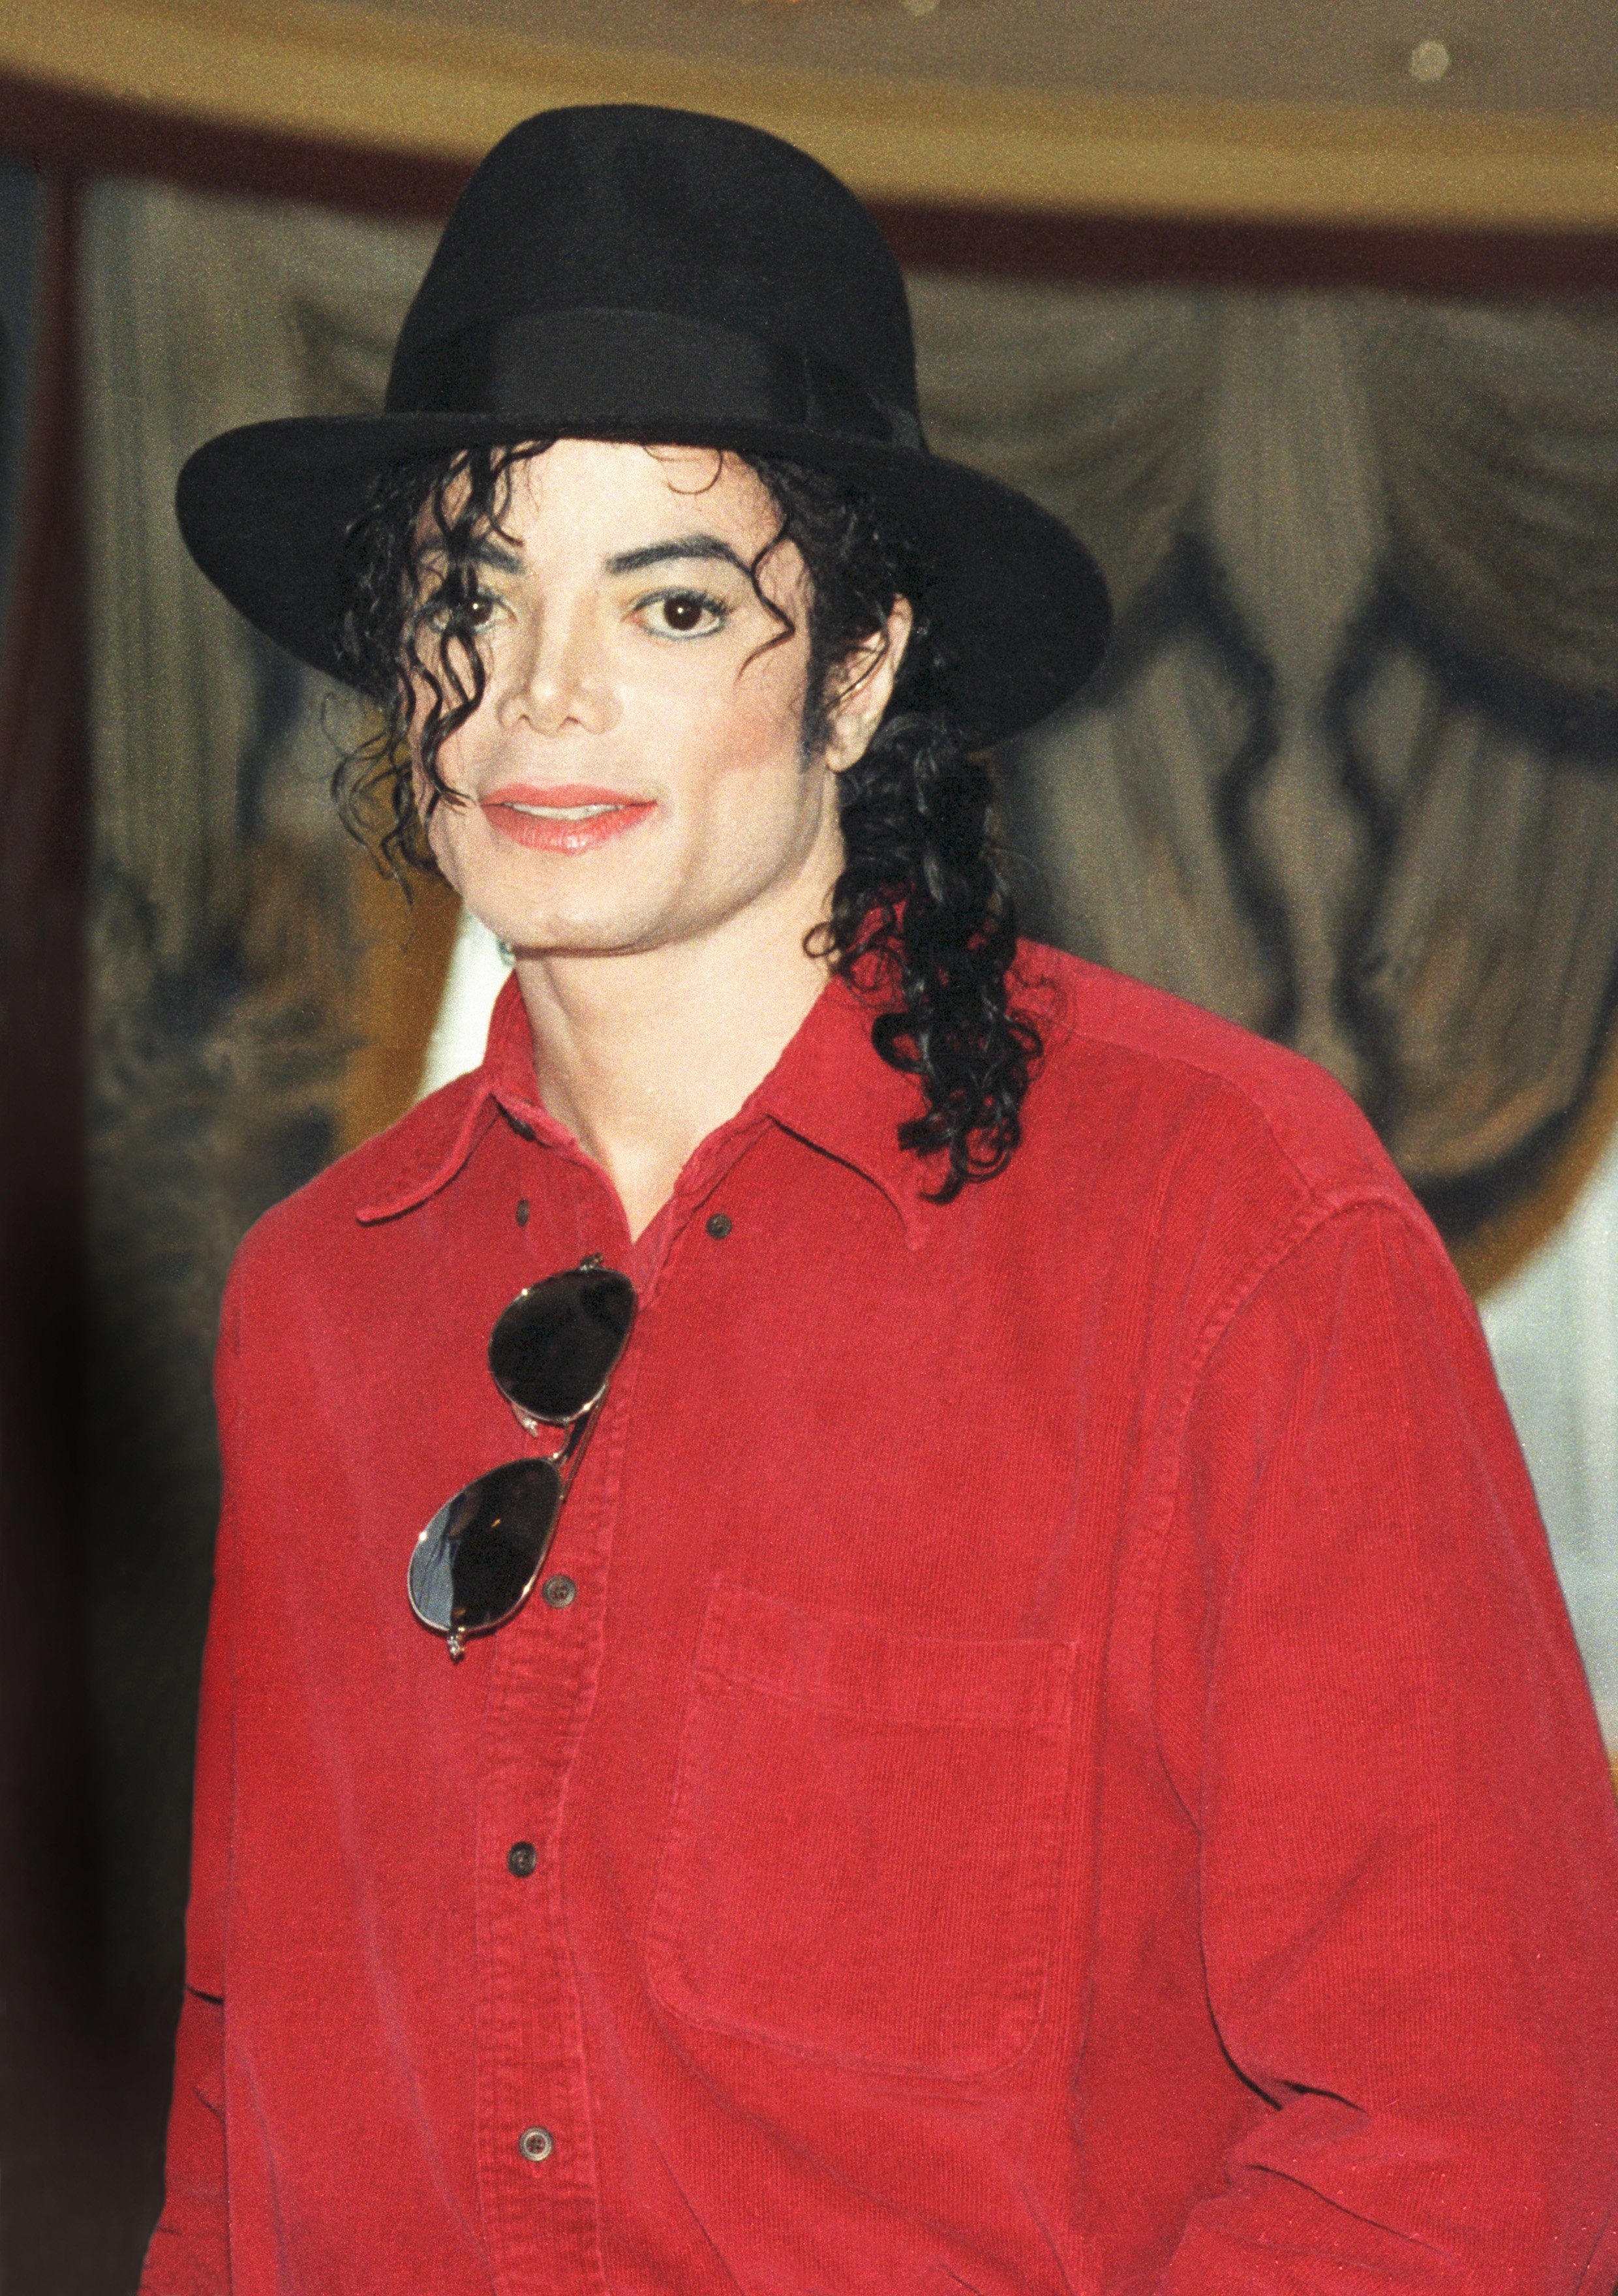 Michael Jackson poses at a press conference before a date on his HIStory world tour in 1996. | Source: Getty Images